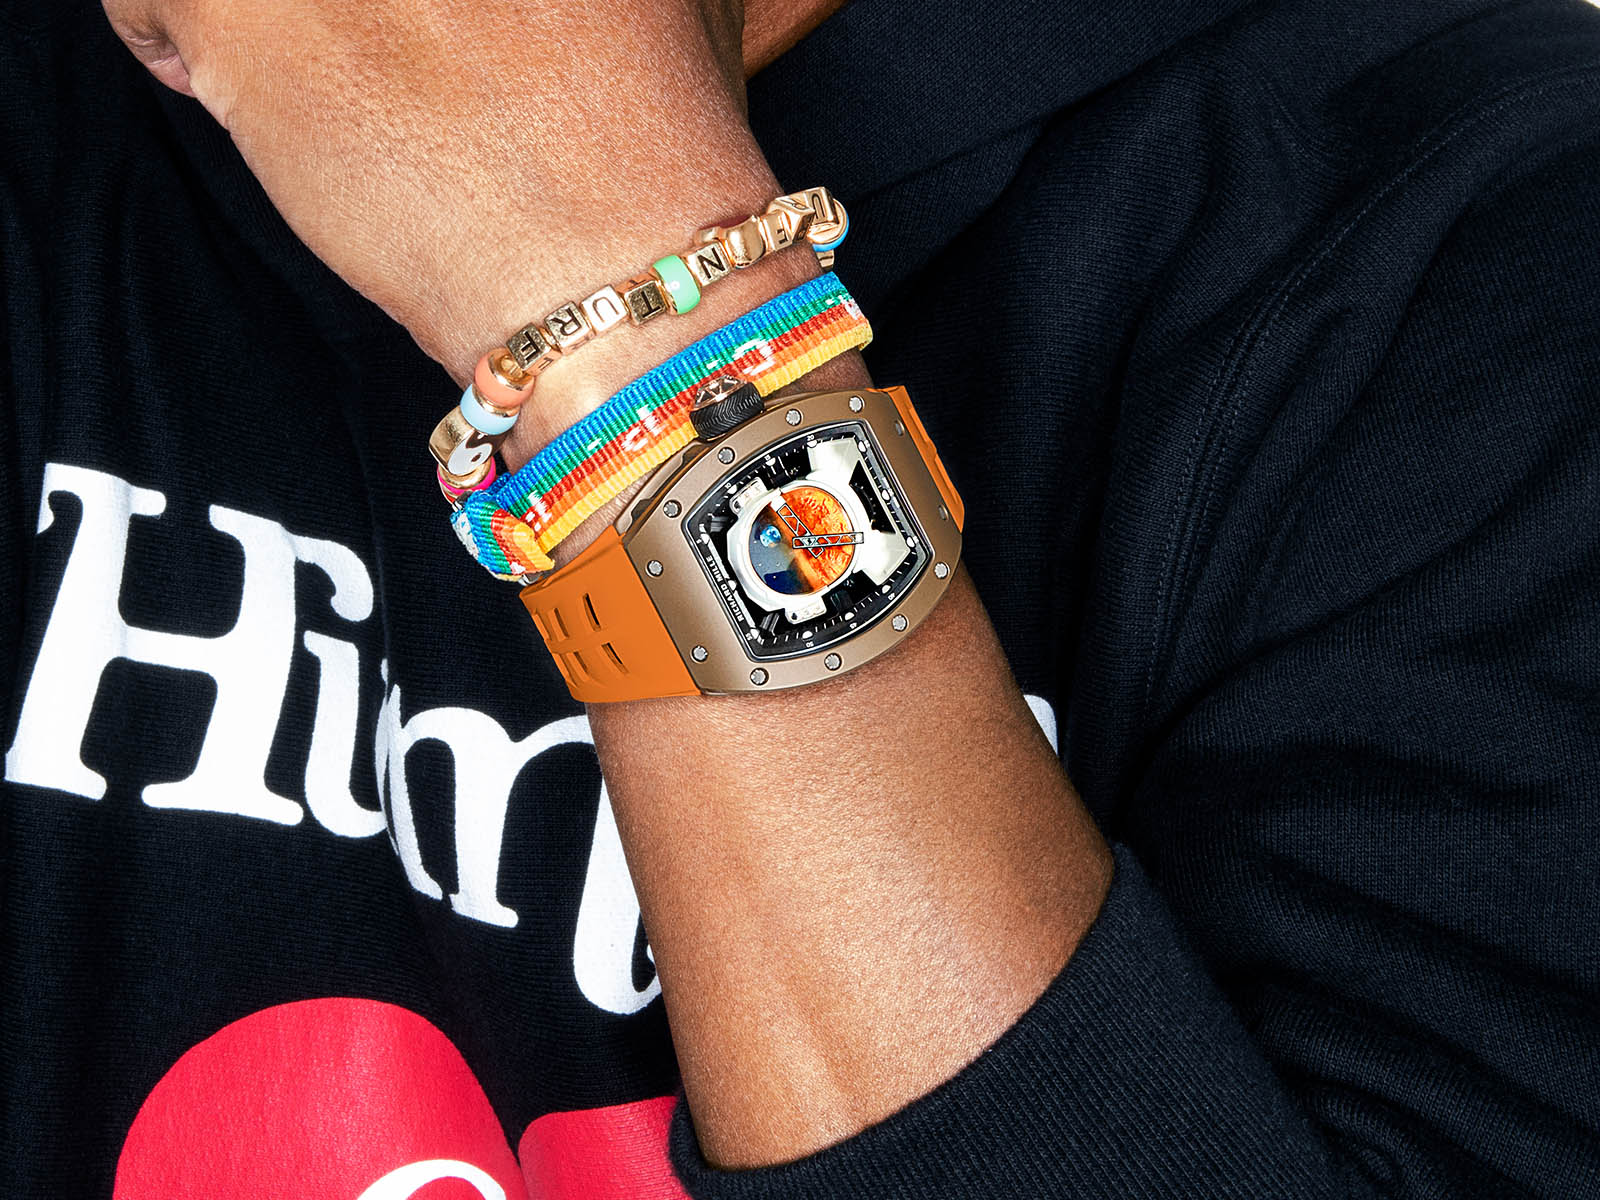 rm-52-05-richard-mille-tourbillon-pharrell-williams-10.jpg